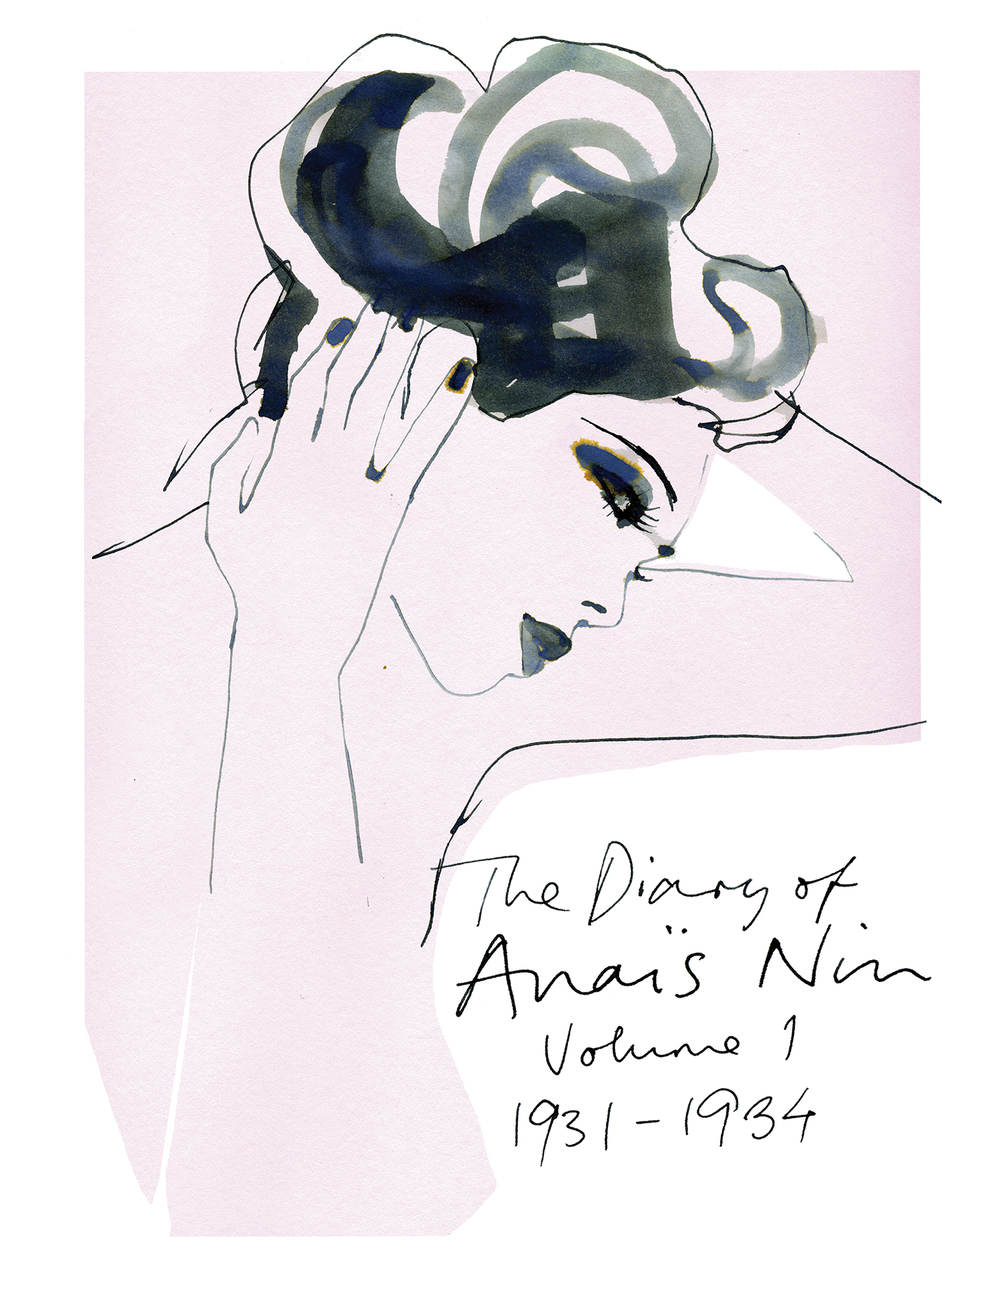 The Diary of Anais Nin Illustration